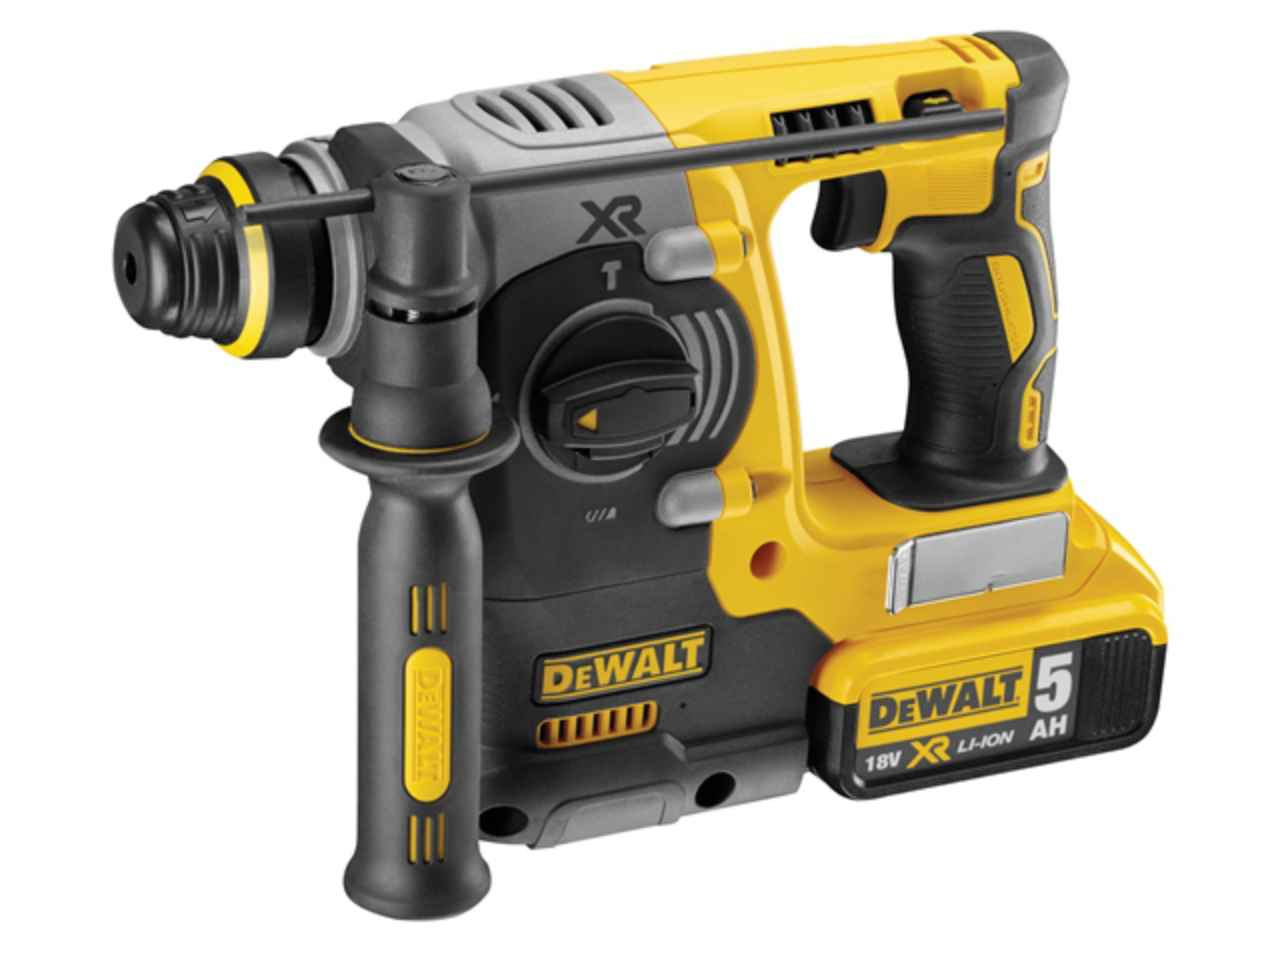 dewalt dch273p2 18v xr brushless sds plus rotary. Black Bedroom Furniture Sets. Home Design Ideas